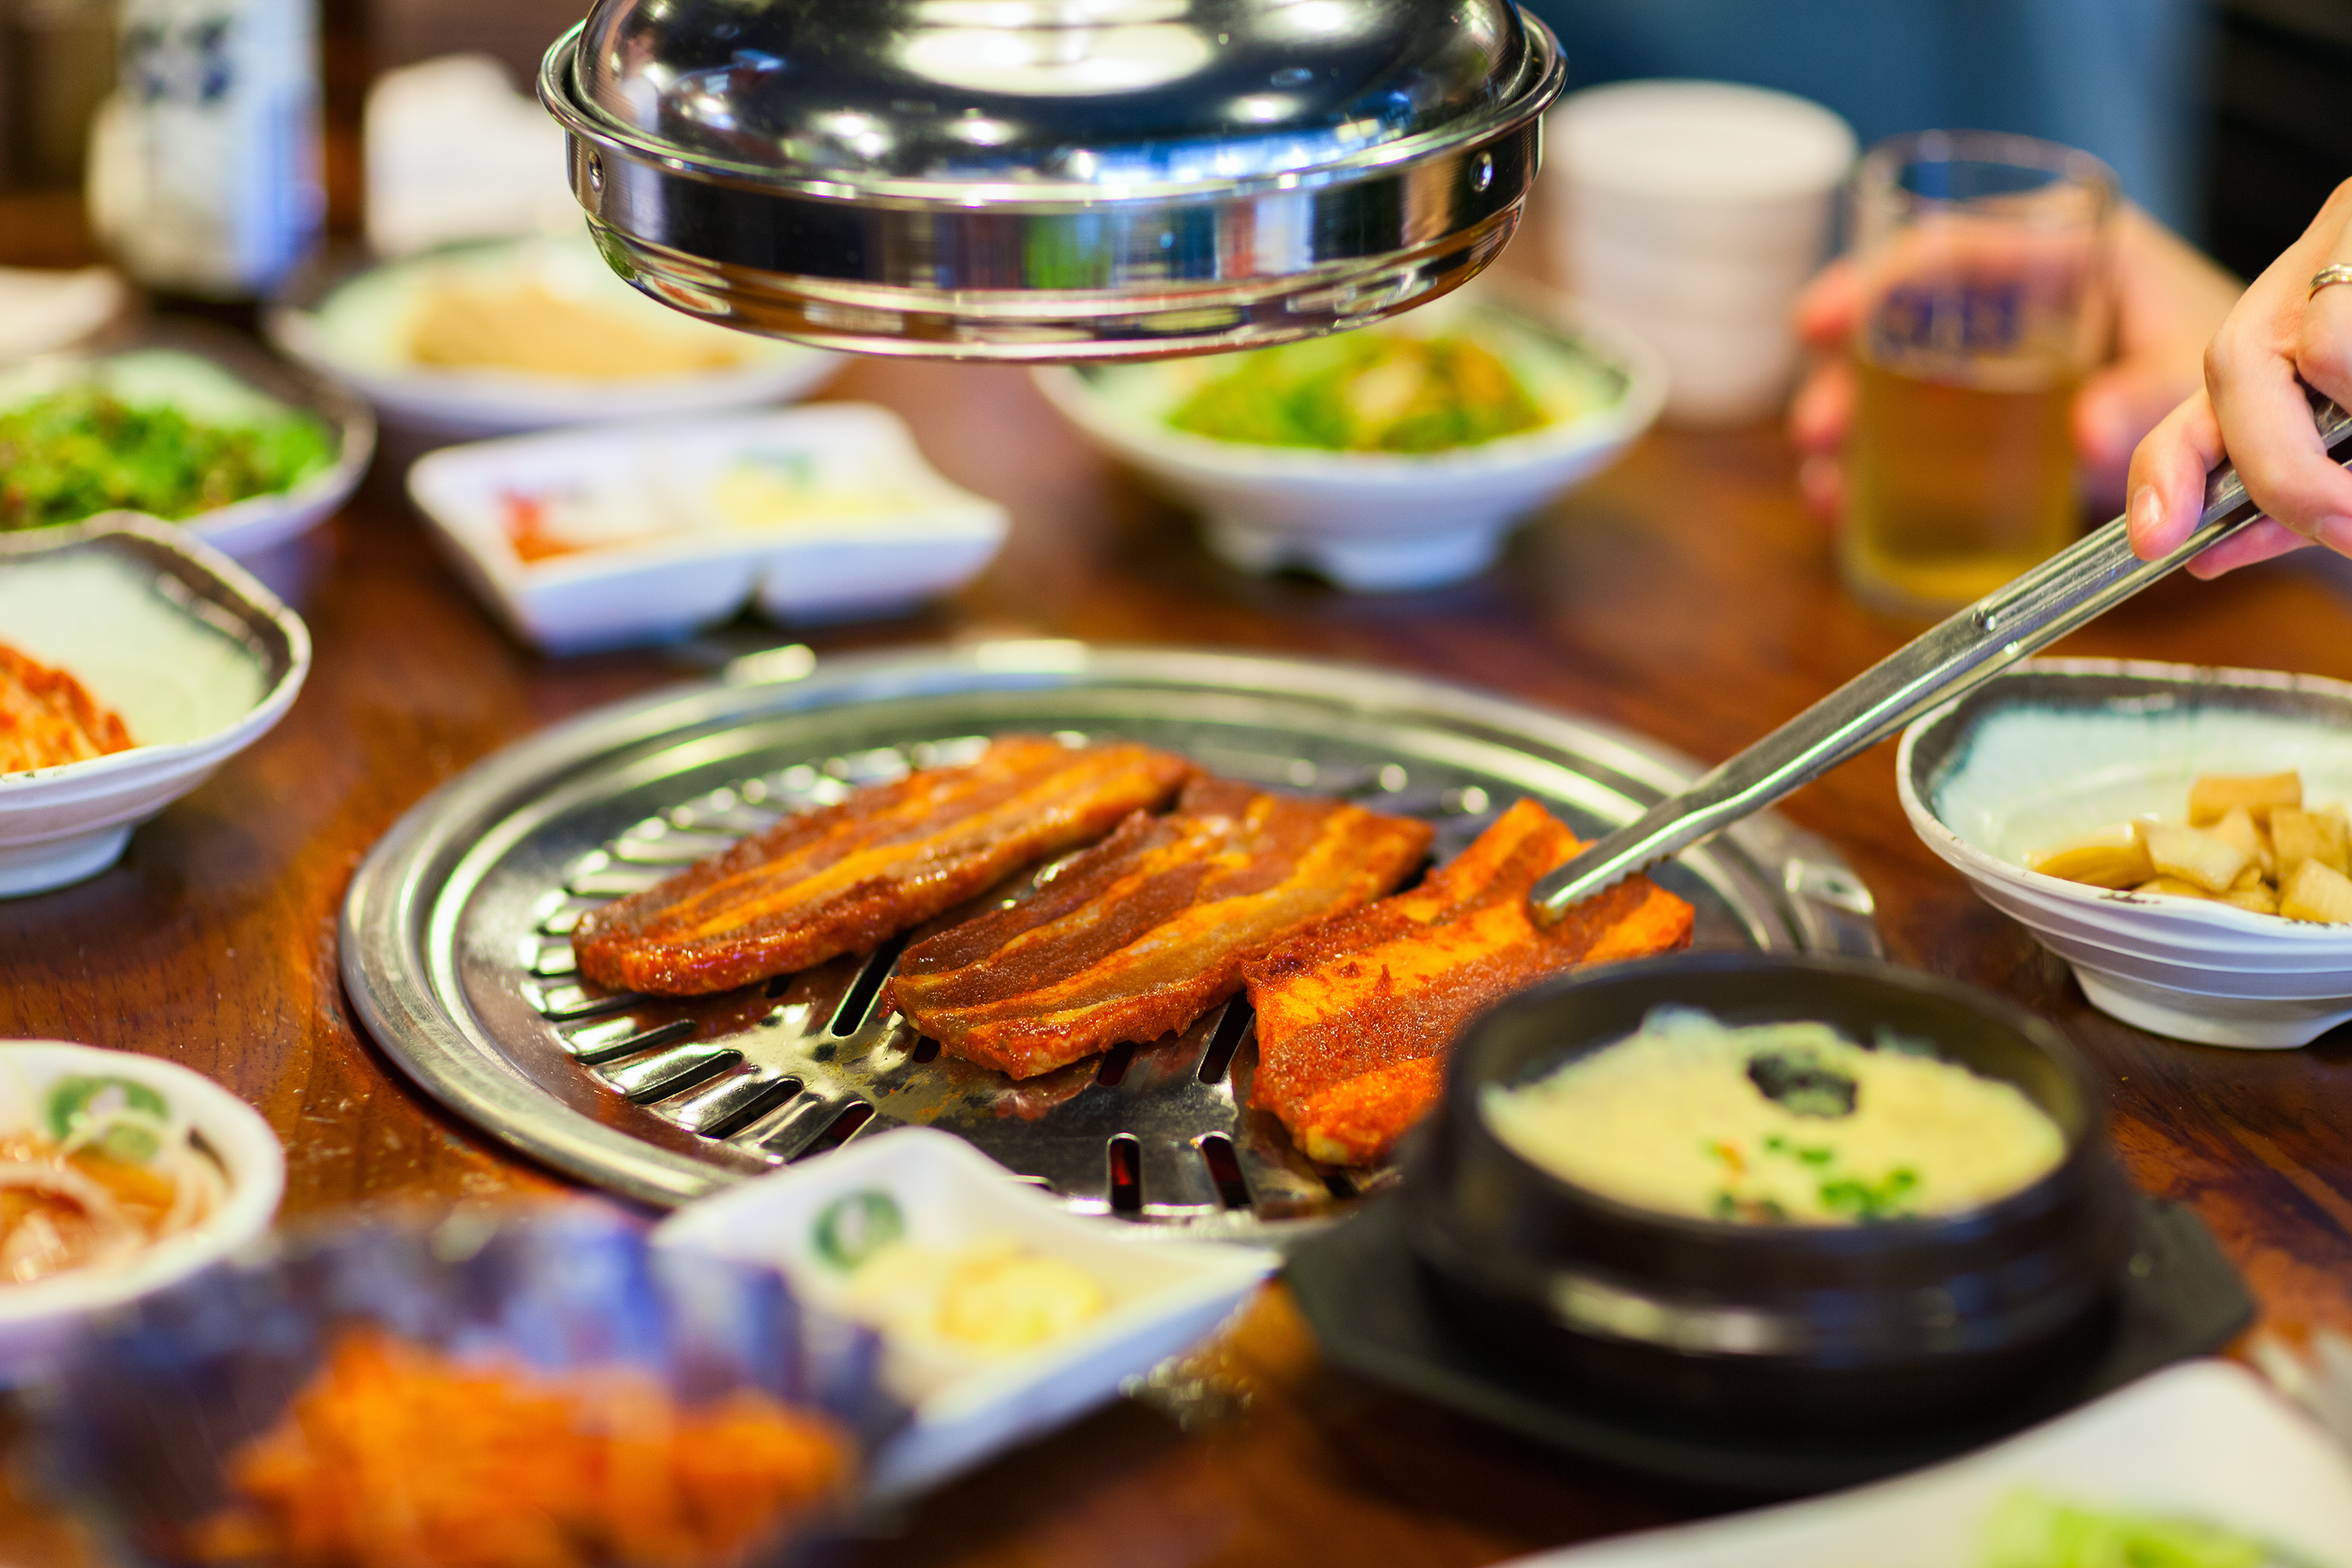 Delicious and yummy korean meal recipes mostly healthy everything has been so focused on korean skincare korean makeup korean fashion korean dramas and definitely korean food have you ever experienced forumfinder Images